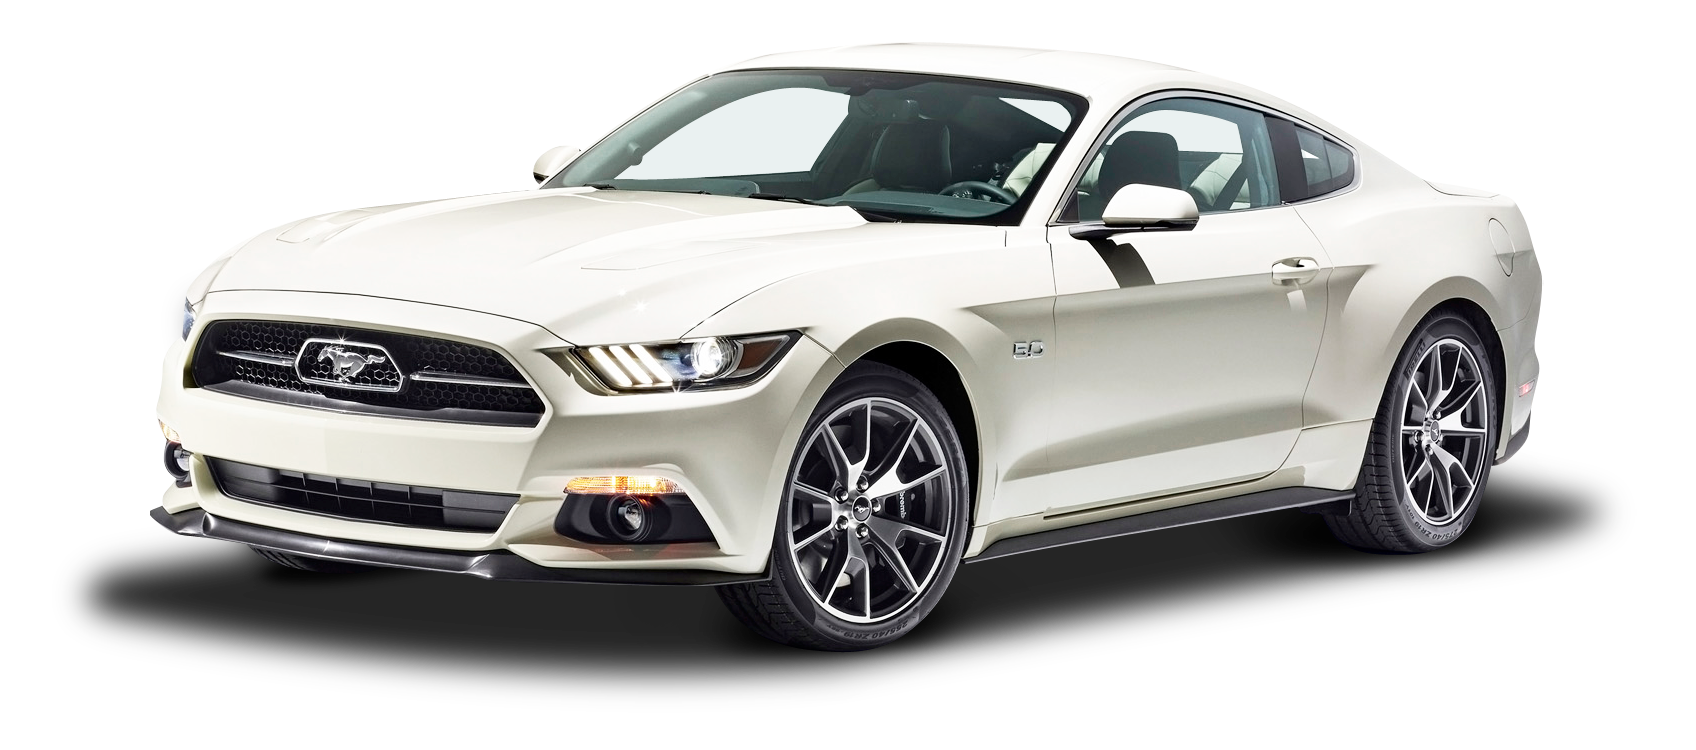 White Ford Mustang Gt Fastback Car Png Image Purepng Free